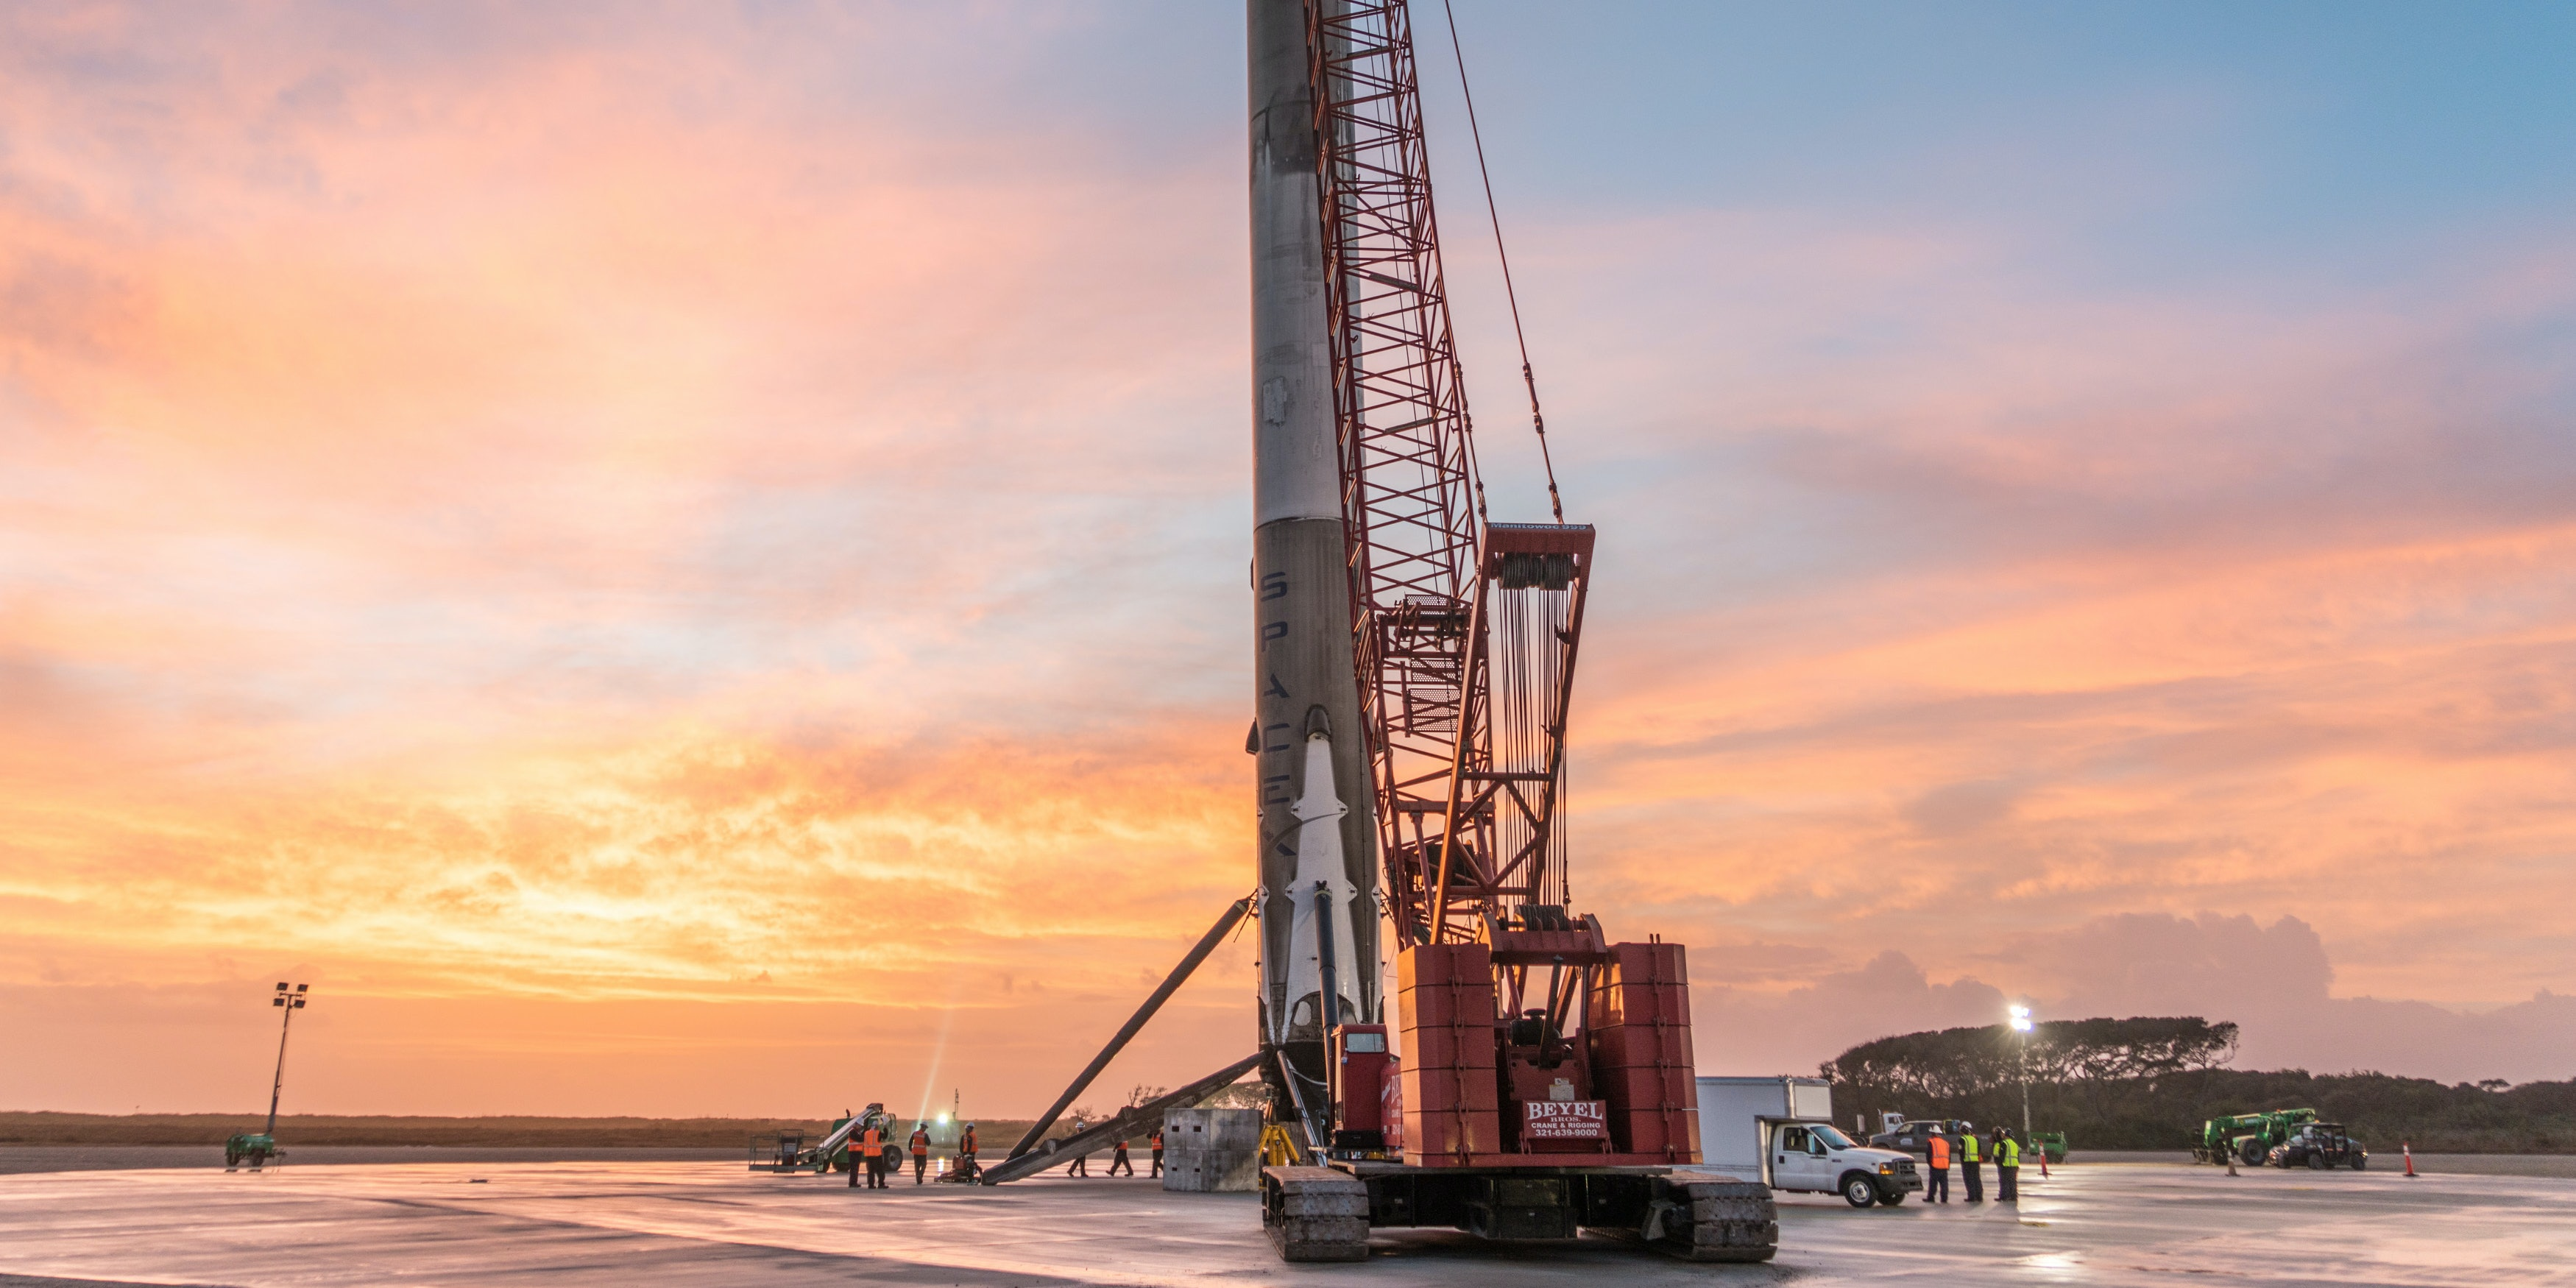 Congressional Investigators Found an Old Flaw in SpaceX's Engines